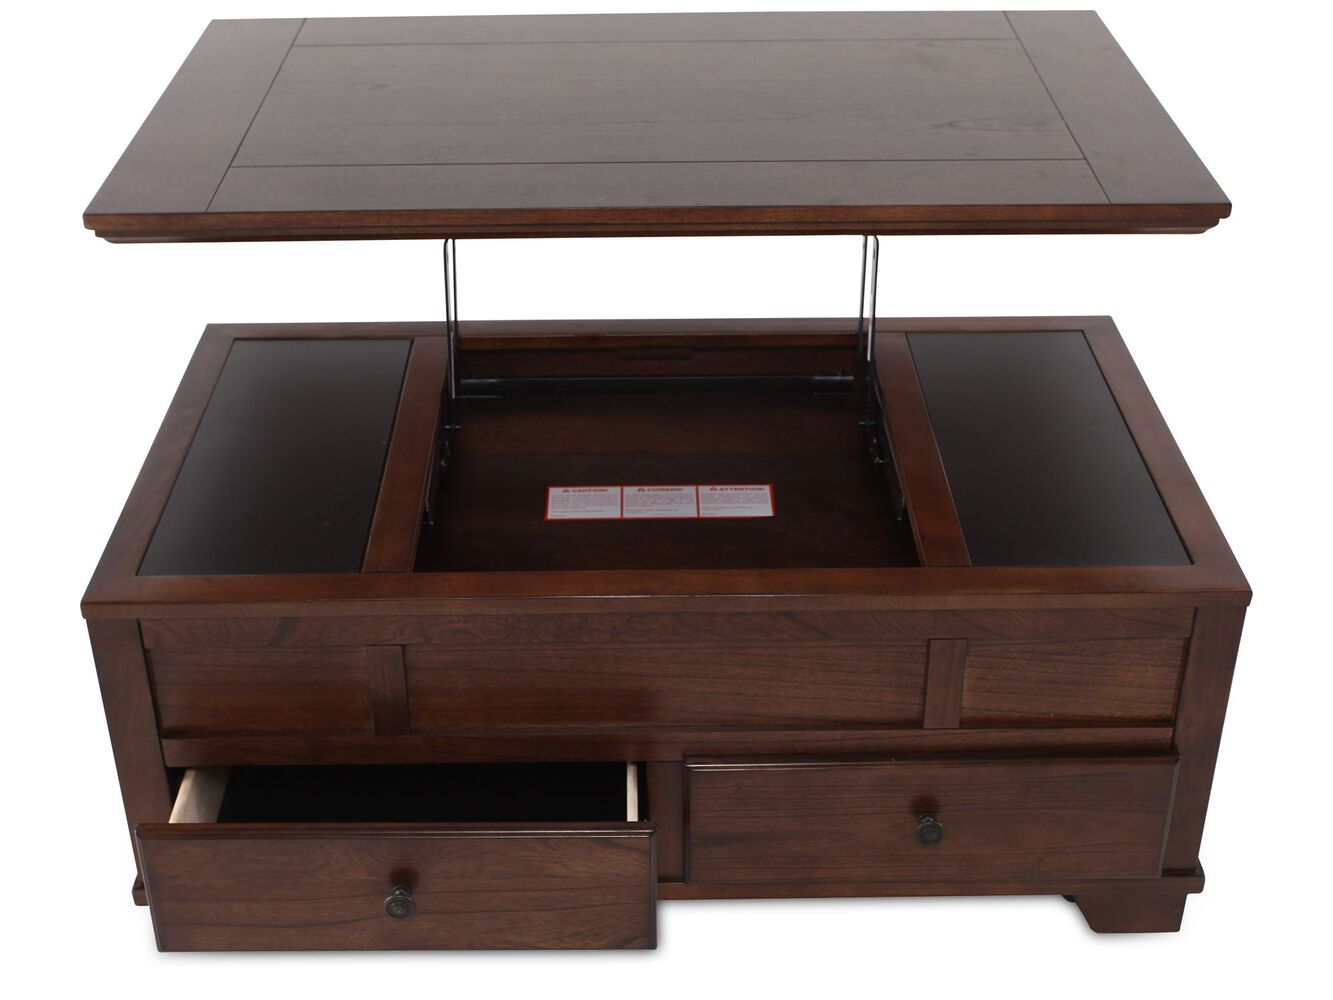 Lift top cocktail table ashley furniture - Ashley Lift Top Cocktail Table